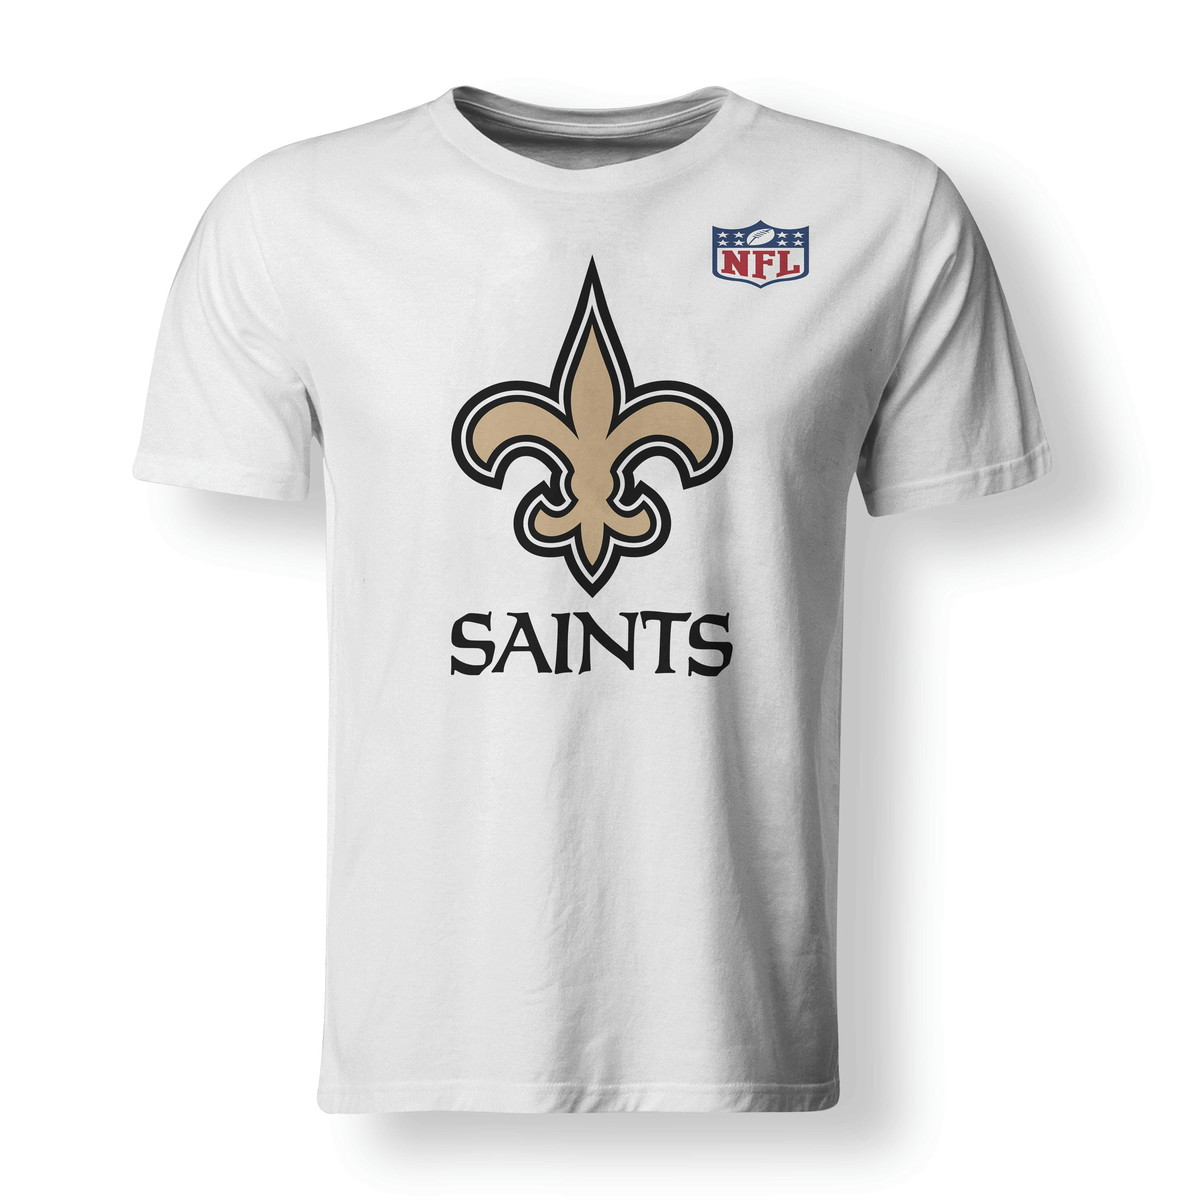 d170747de Camiseta New Orleans Saints NFL - A3 no Elo7